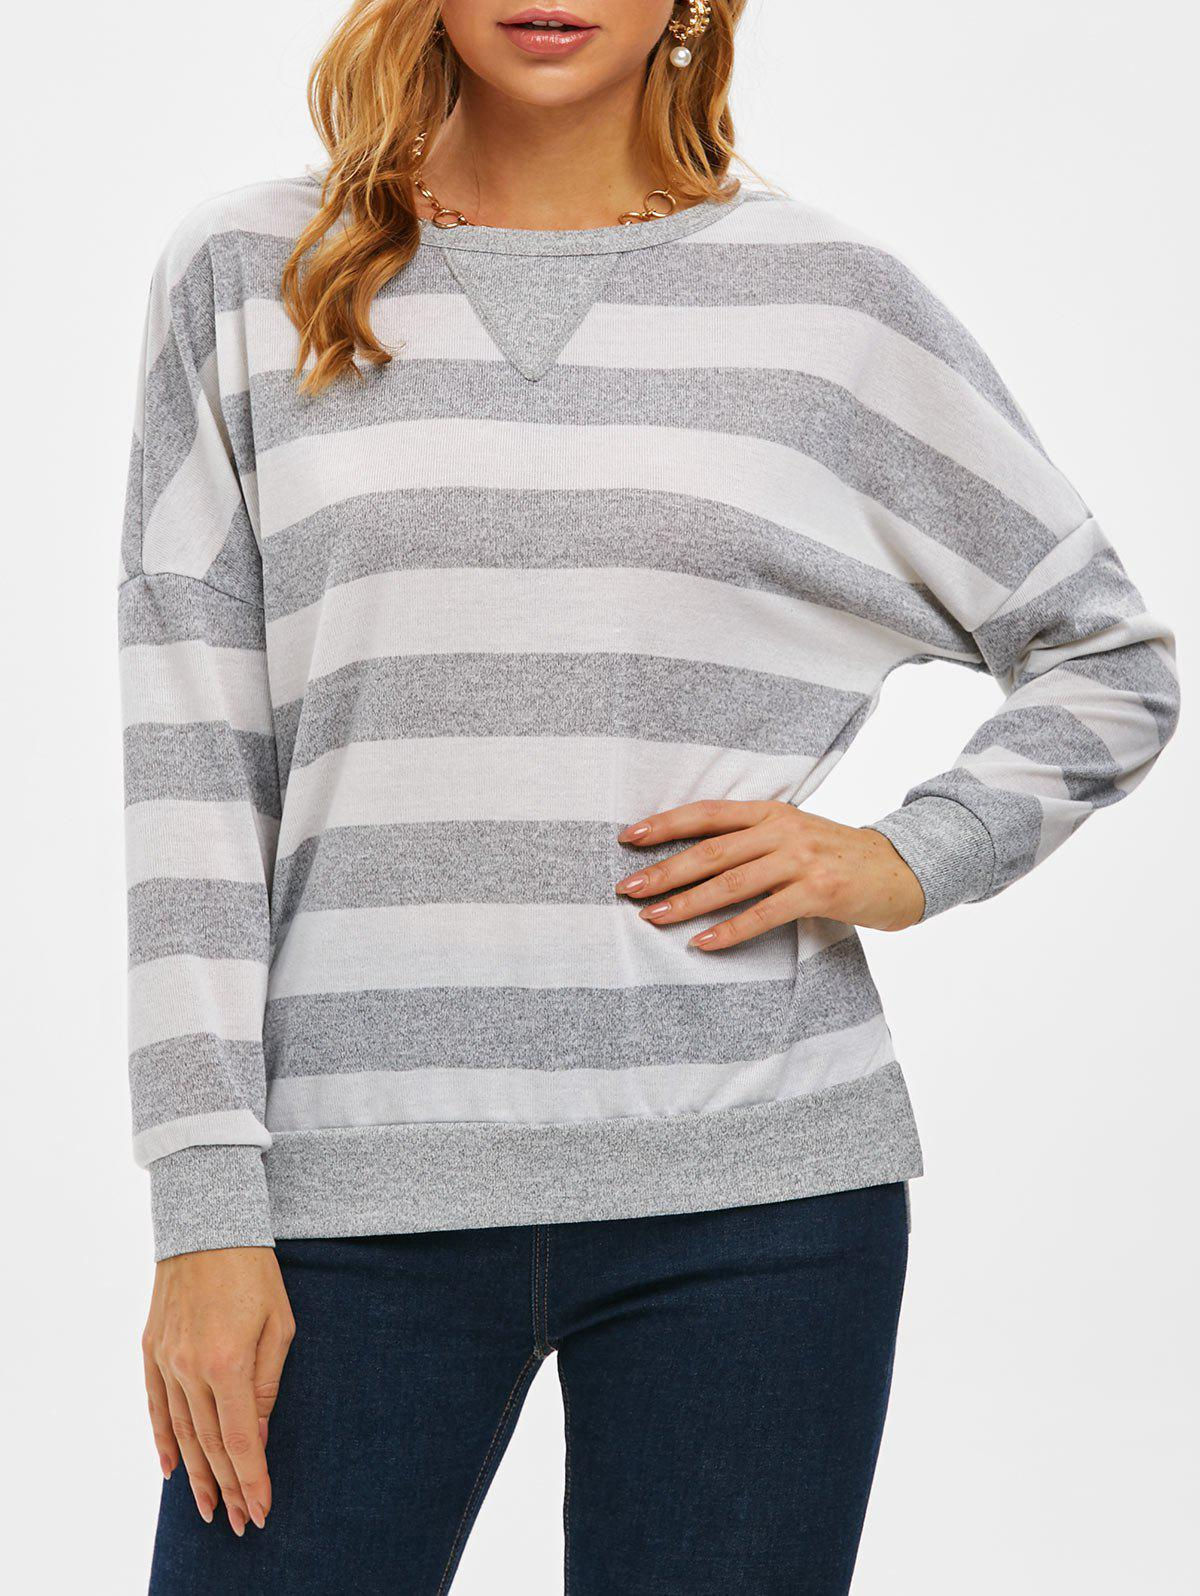 Two Tone Striped Drop Shoulder Slit Tunic Knitwear - LIGHT GRAY XL